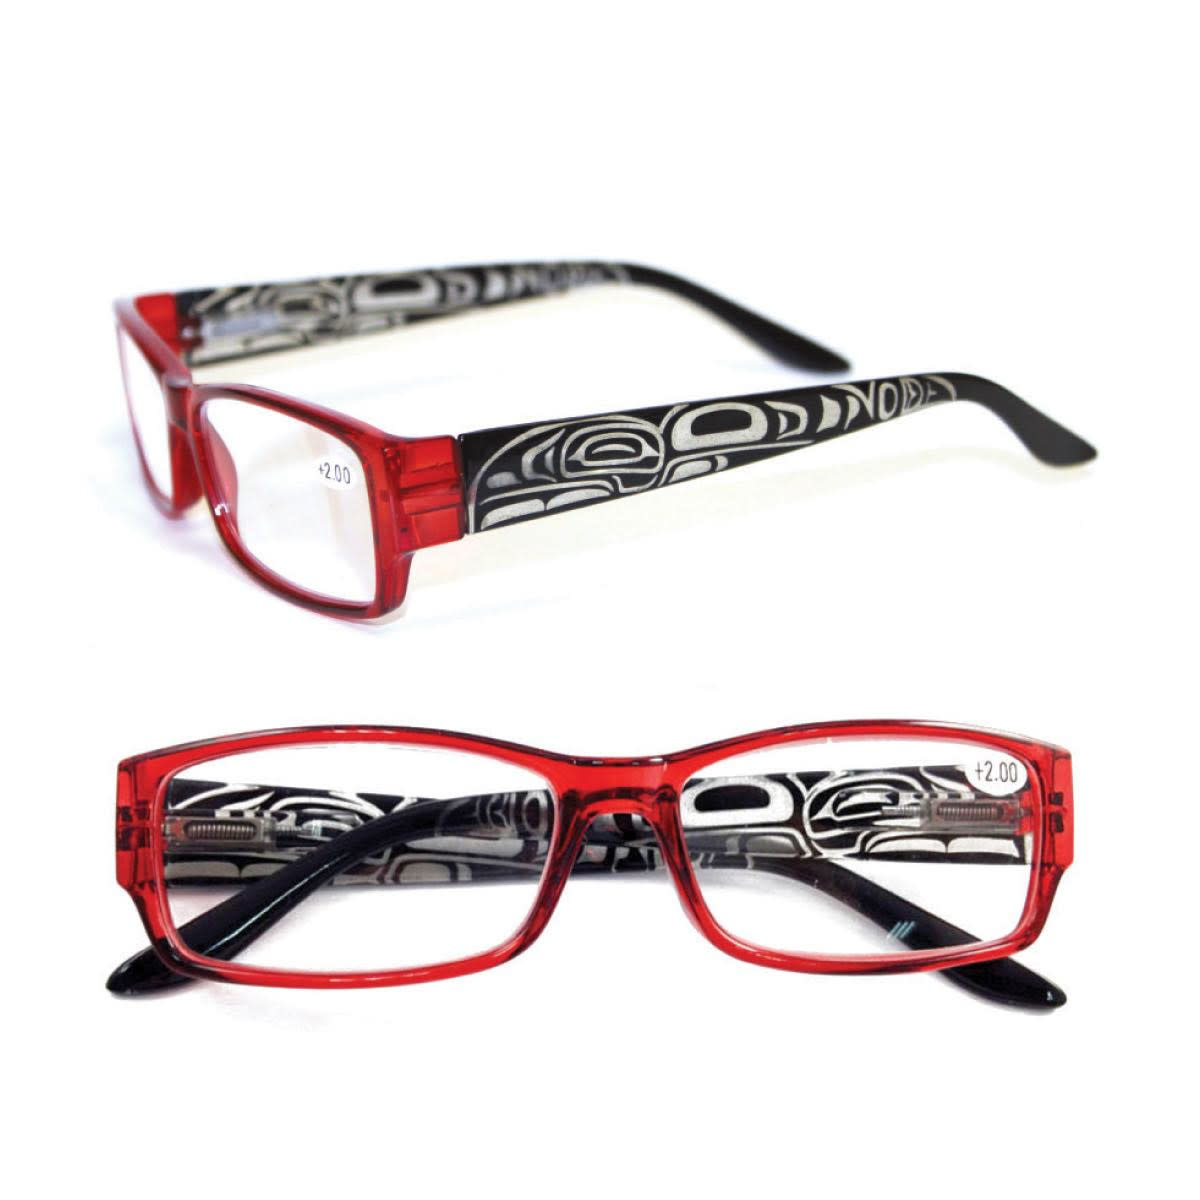 Adult Reading Glasses-2